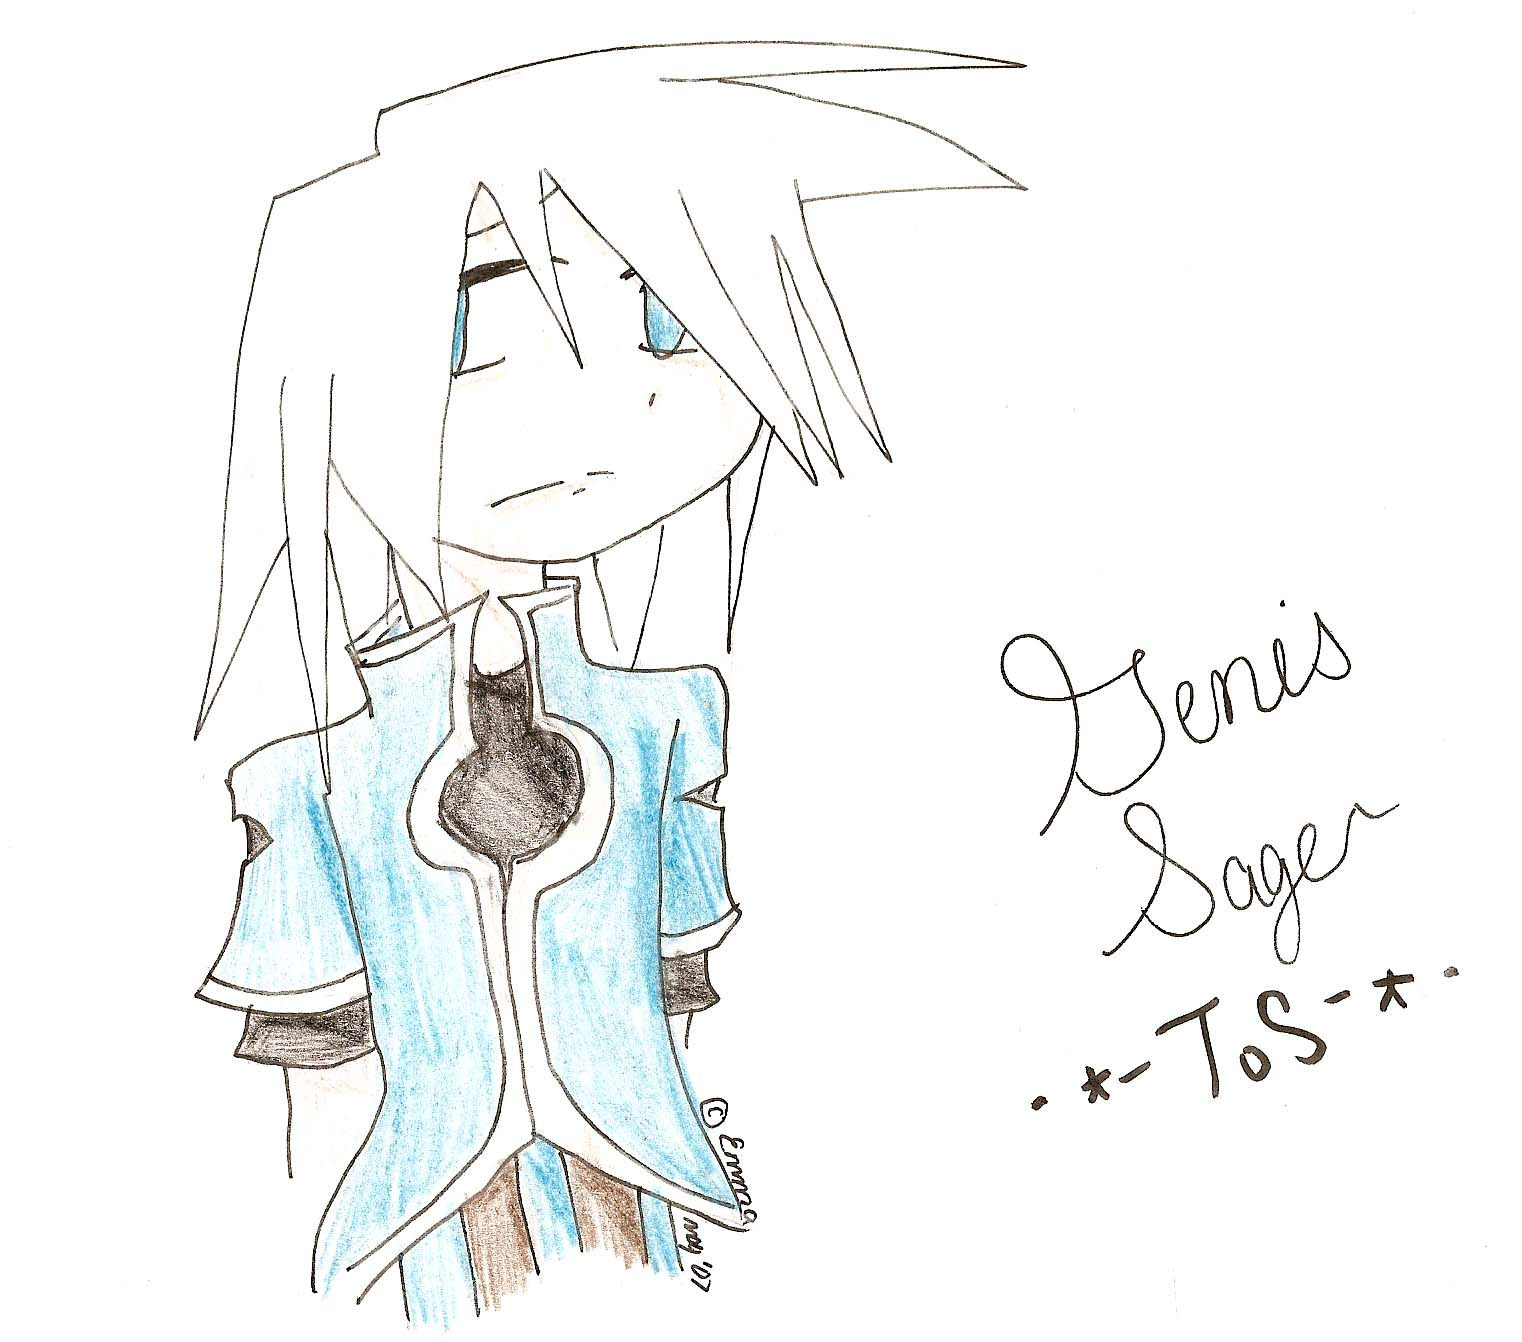 Genis is saaaaaad by Kari